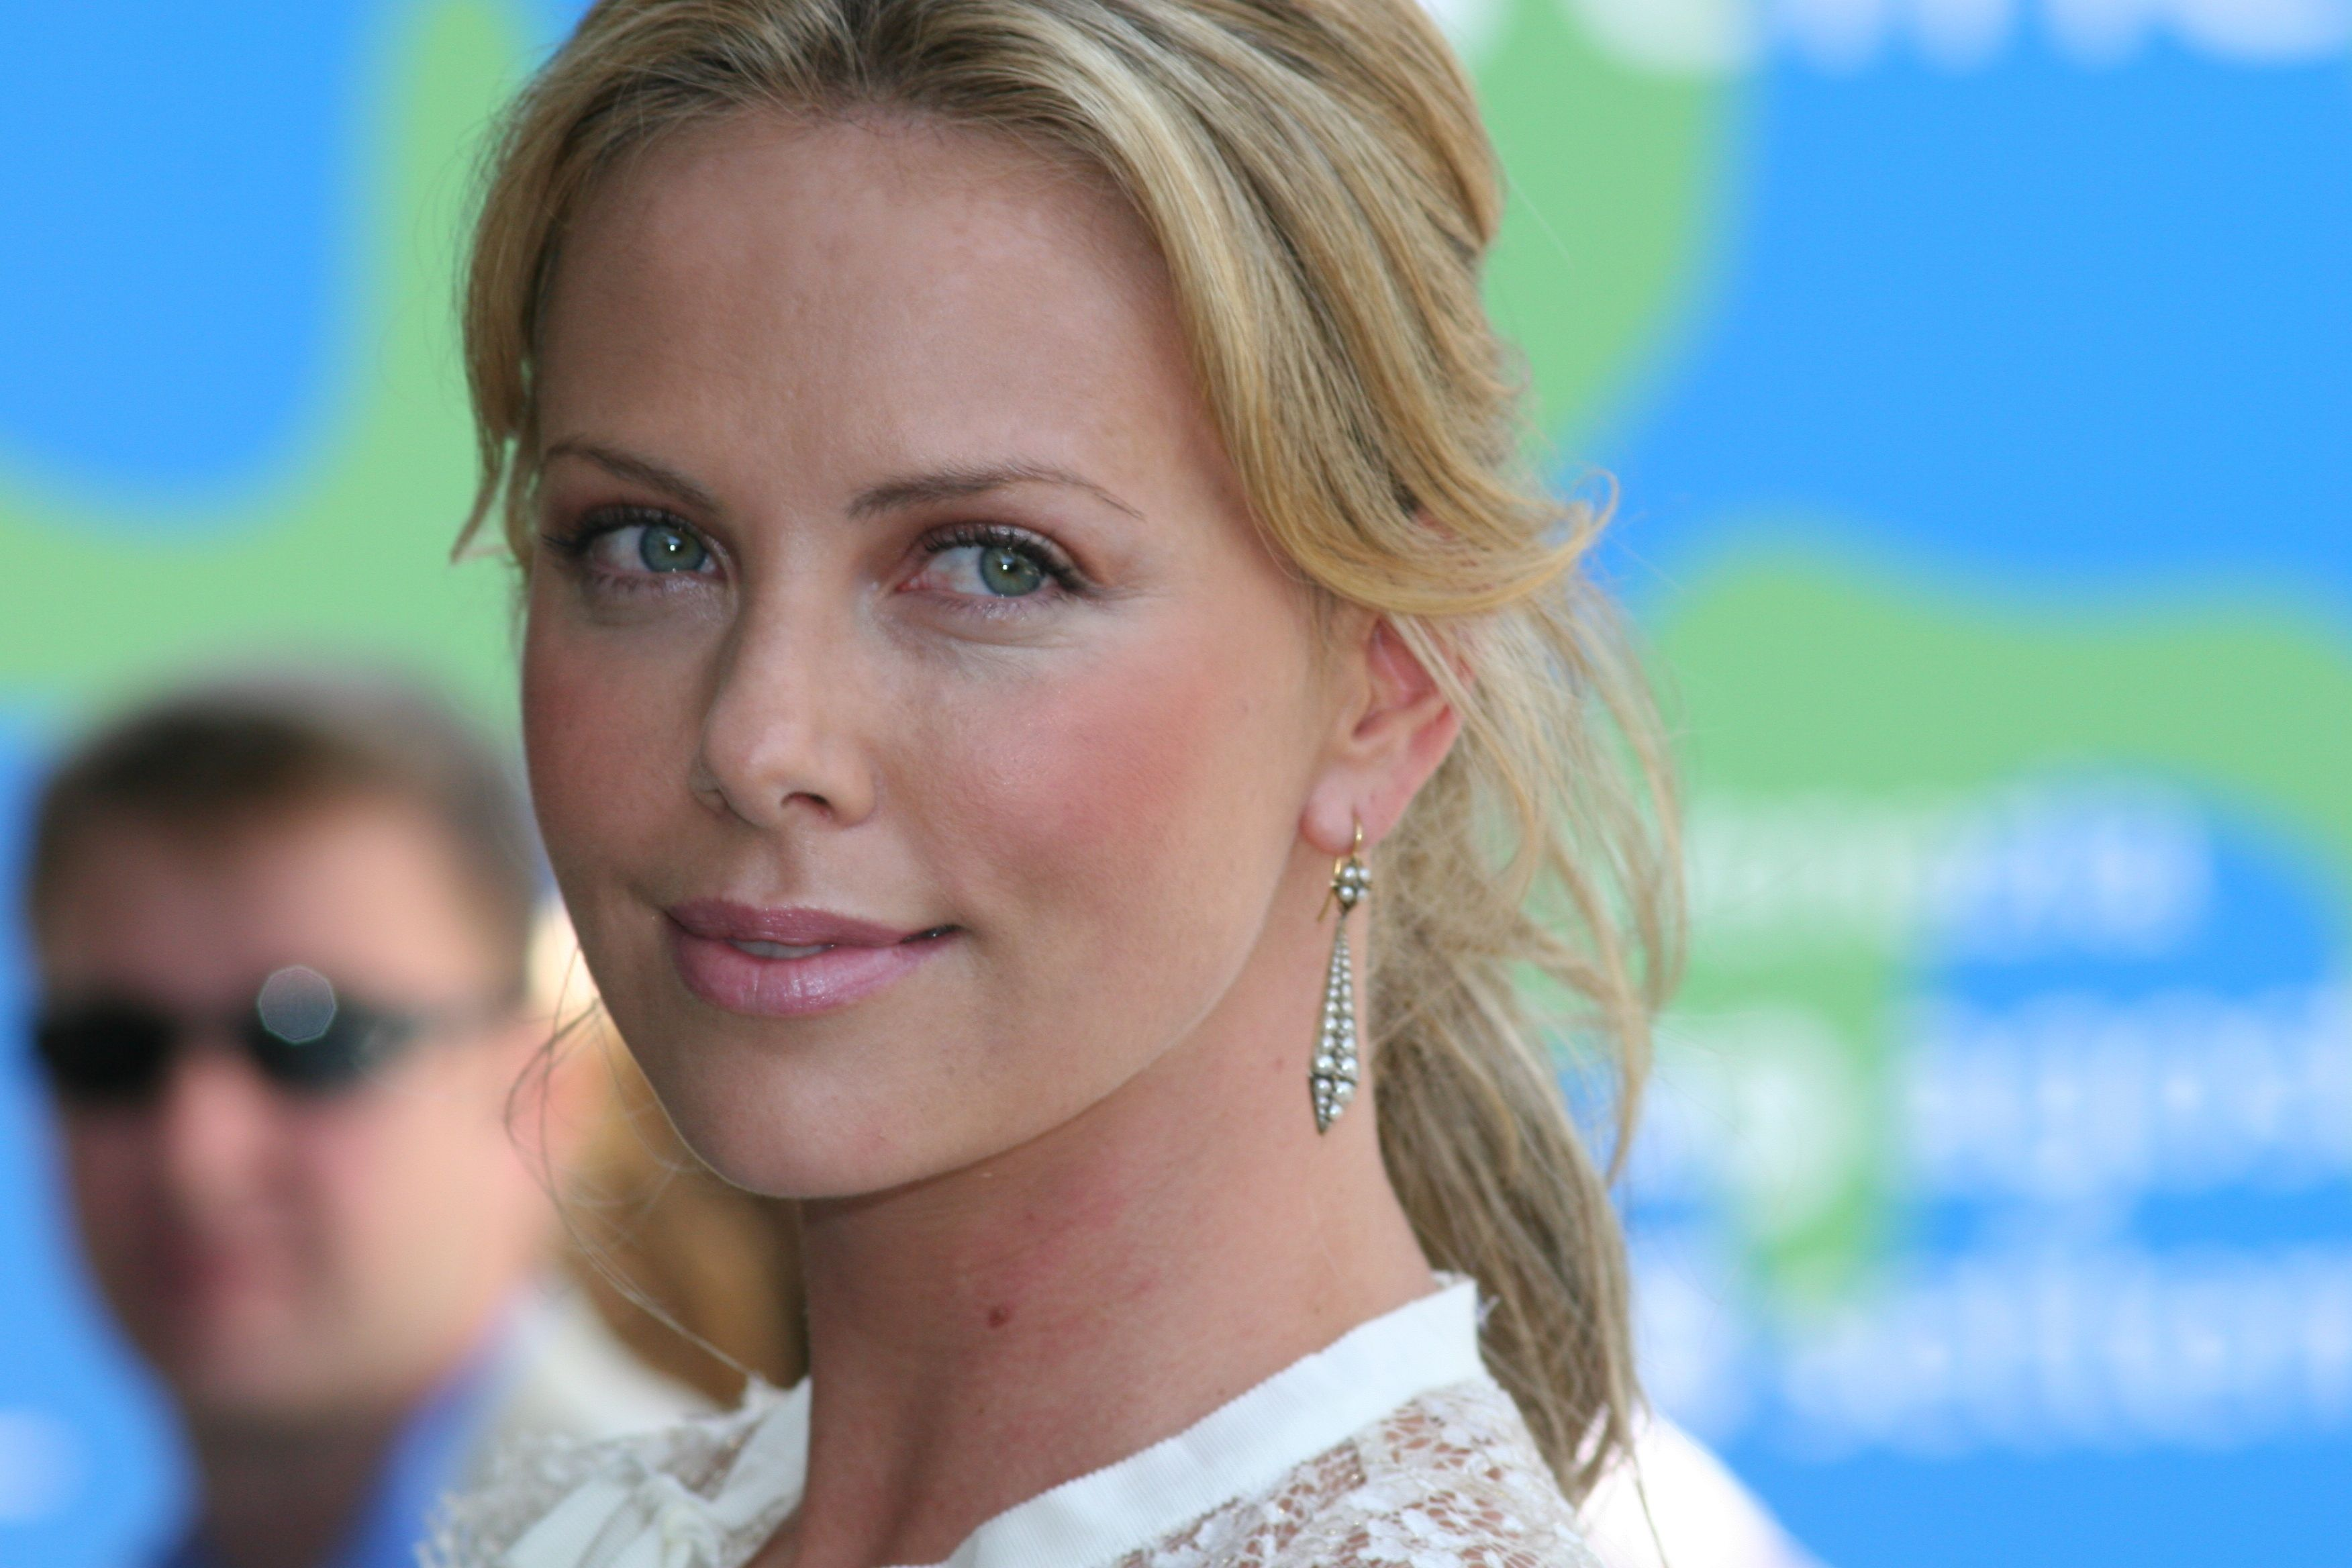 4. Charlize Theron